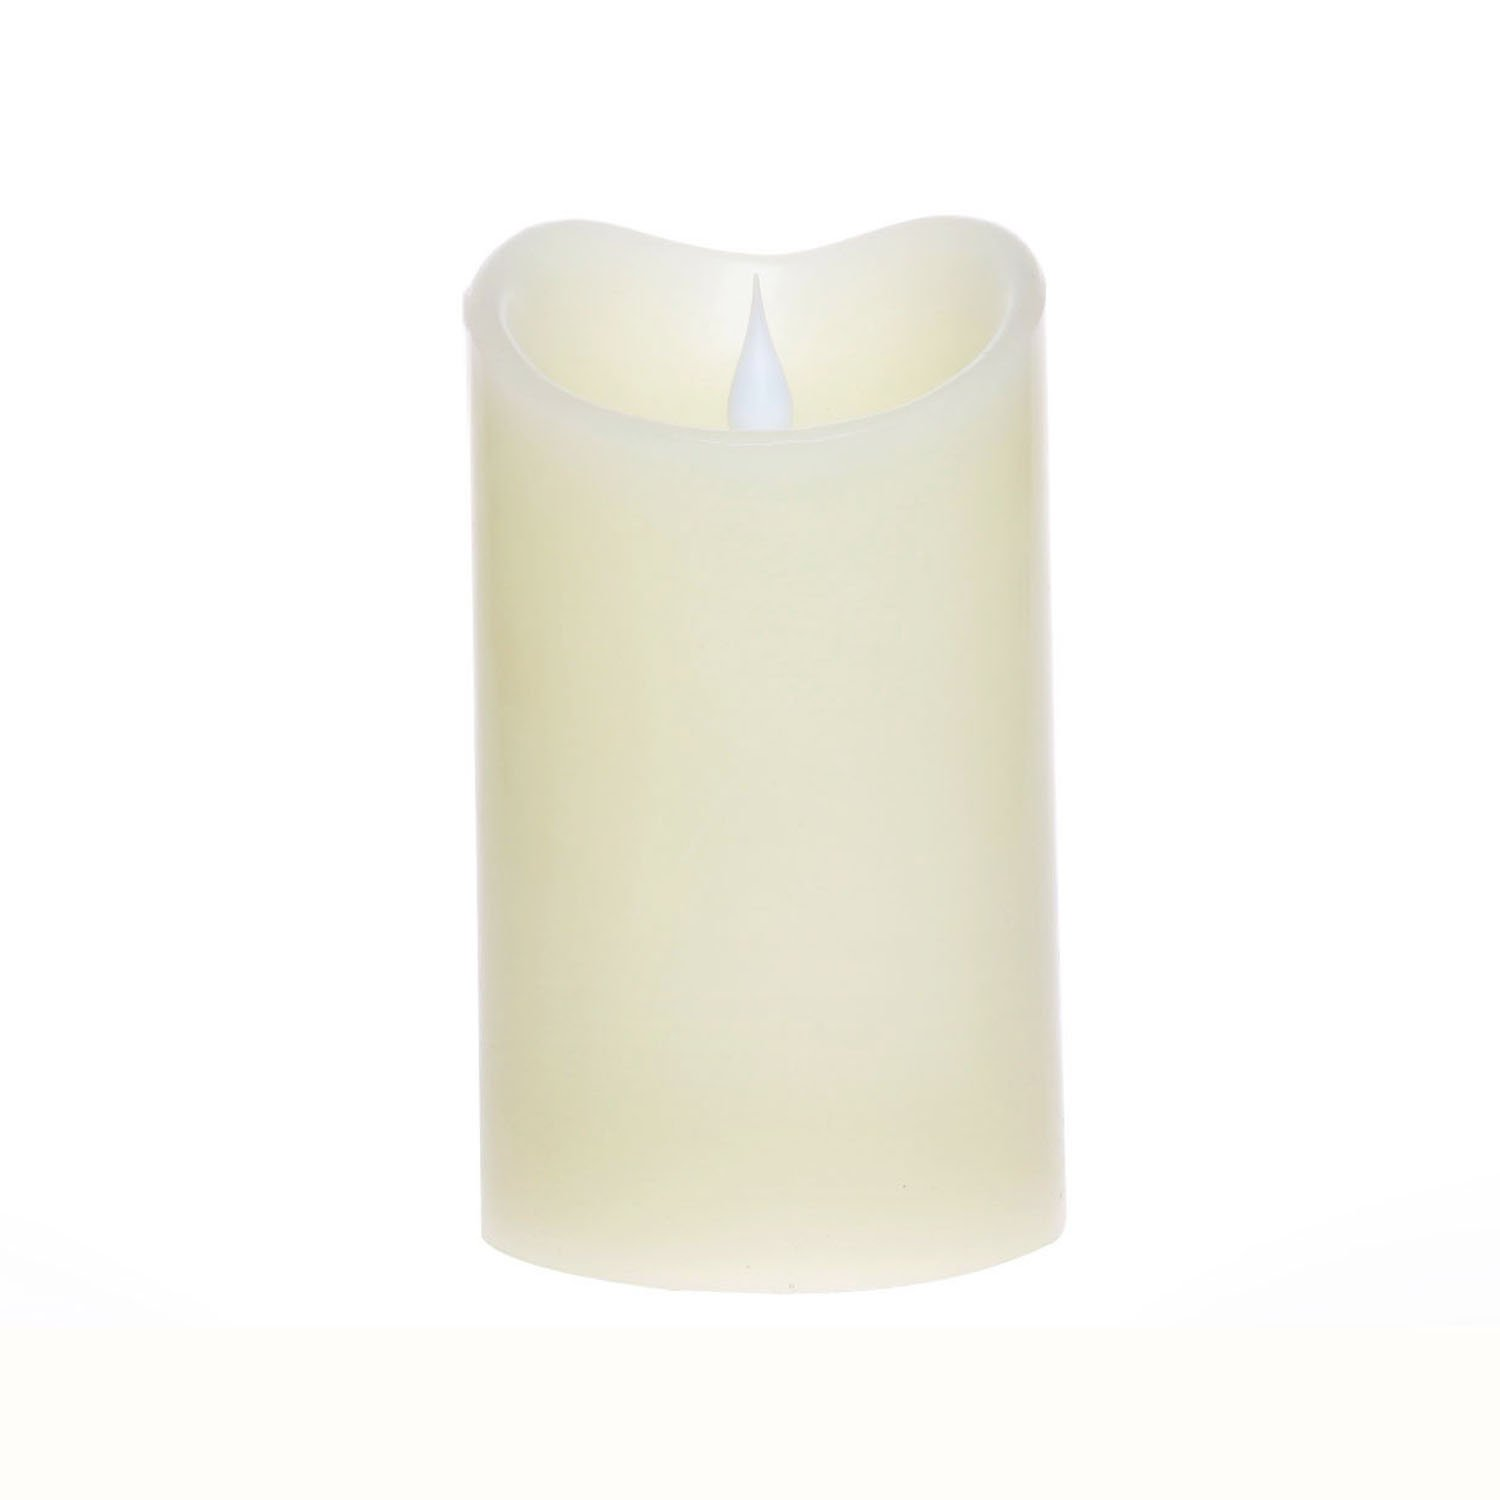 Led Candle Flameless Candle Moving Wick Free-Flowing 3D Fireless flame Real Wax LED Pillar Candle Light With Timer,Home Wedding candle,Battery-Operated,3.75x6.5 Inch,Ivory simplux LM13001